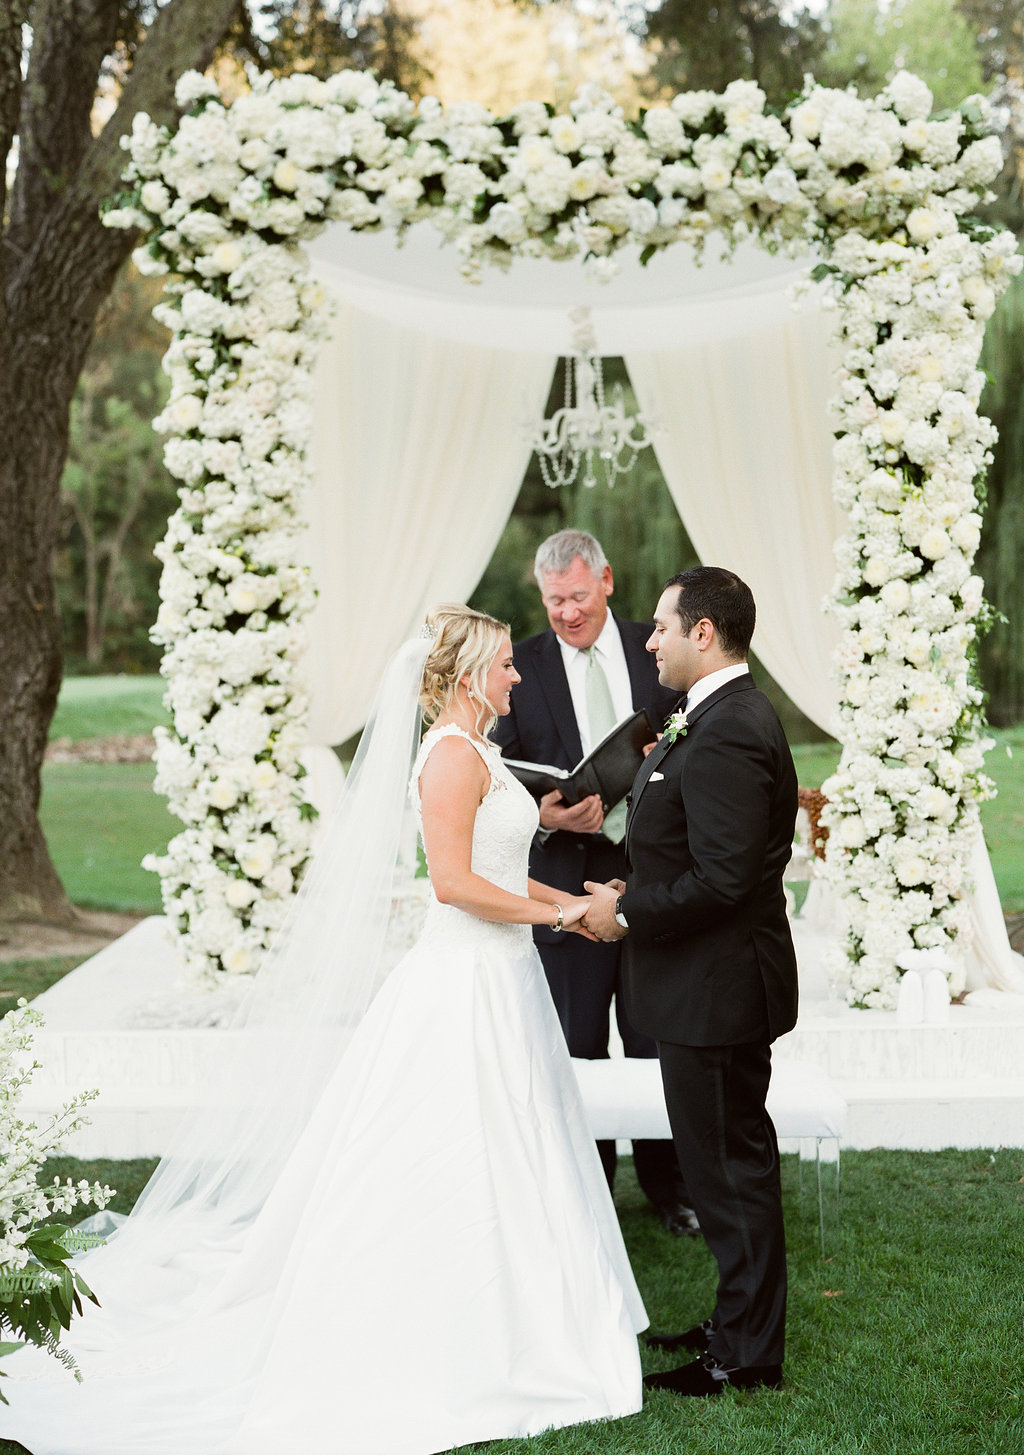 Katlin&Nawder-Ceremony-LindsayMaddenPhotography-85.jpg